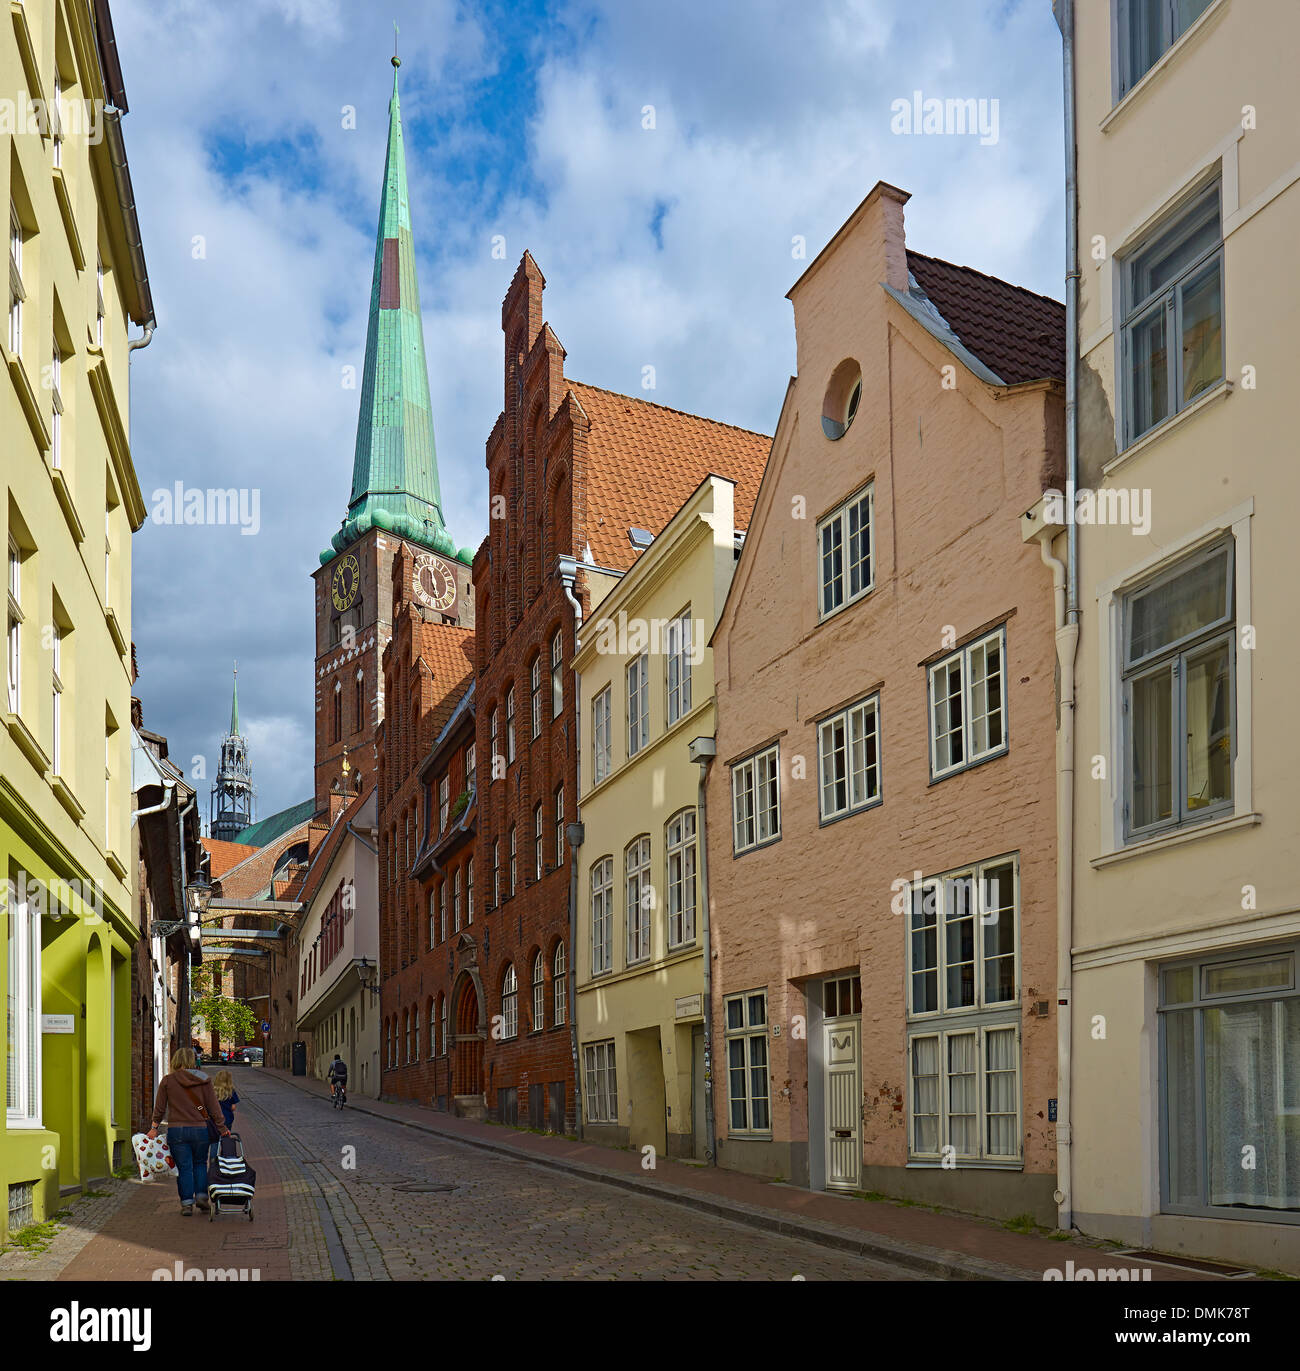 Engelsgrube street with St. James Church, Lübeck, Schleswig-Holstein, Germany - Stock Image